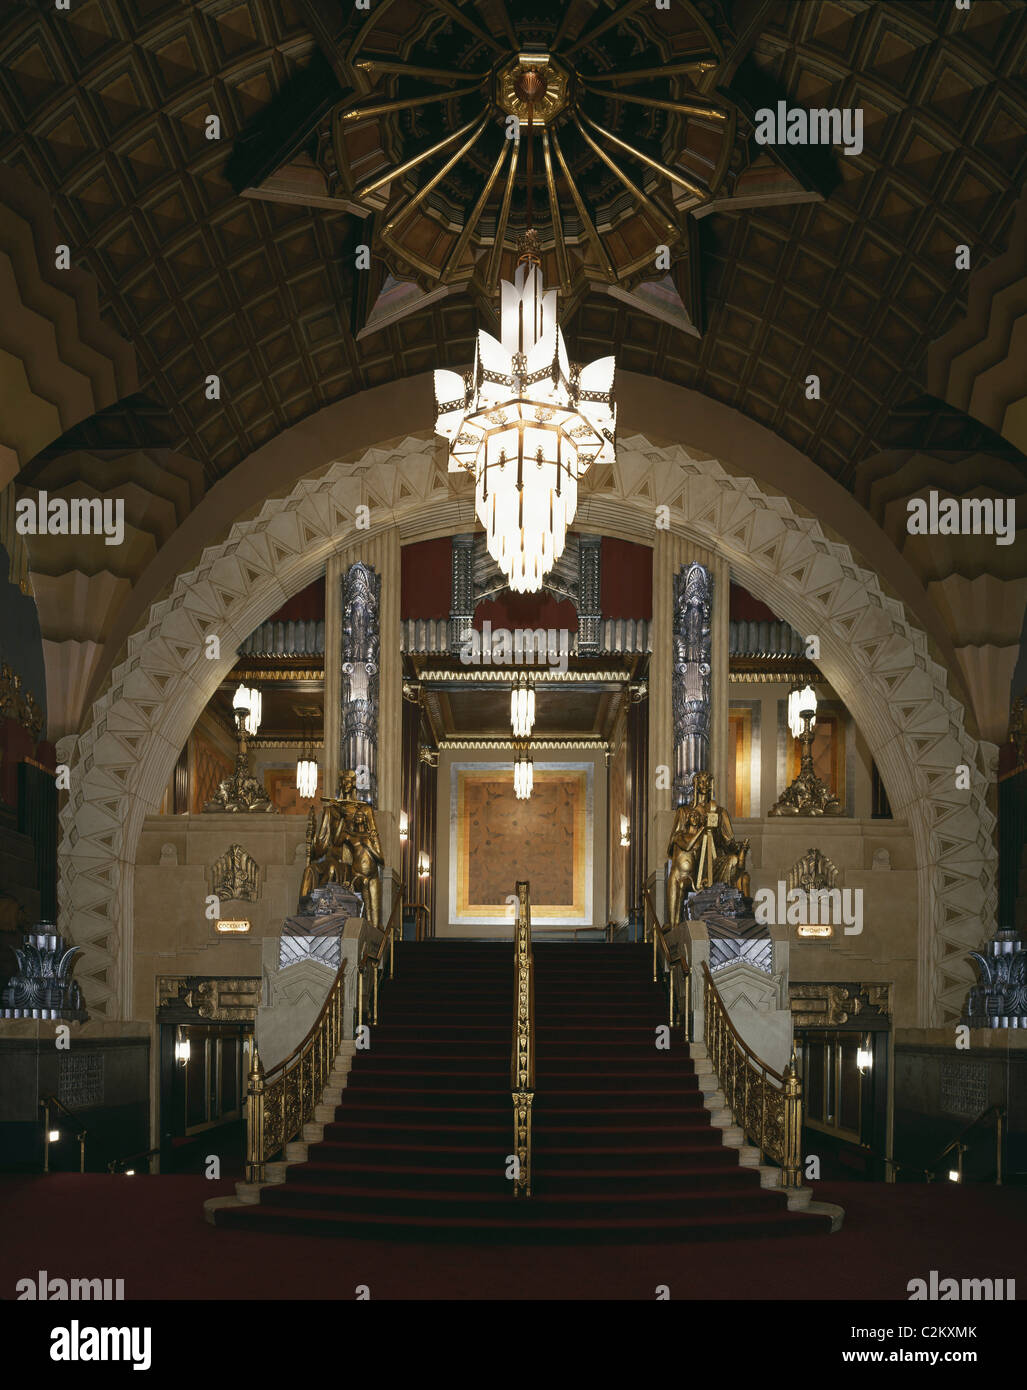 Pantages theater 6233 hollywood boulevard california 1929 restored 2001 by spf architects interior arched entrance lobby